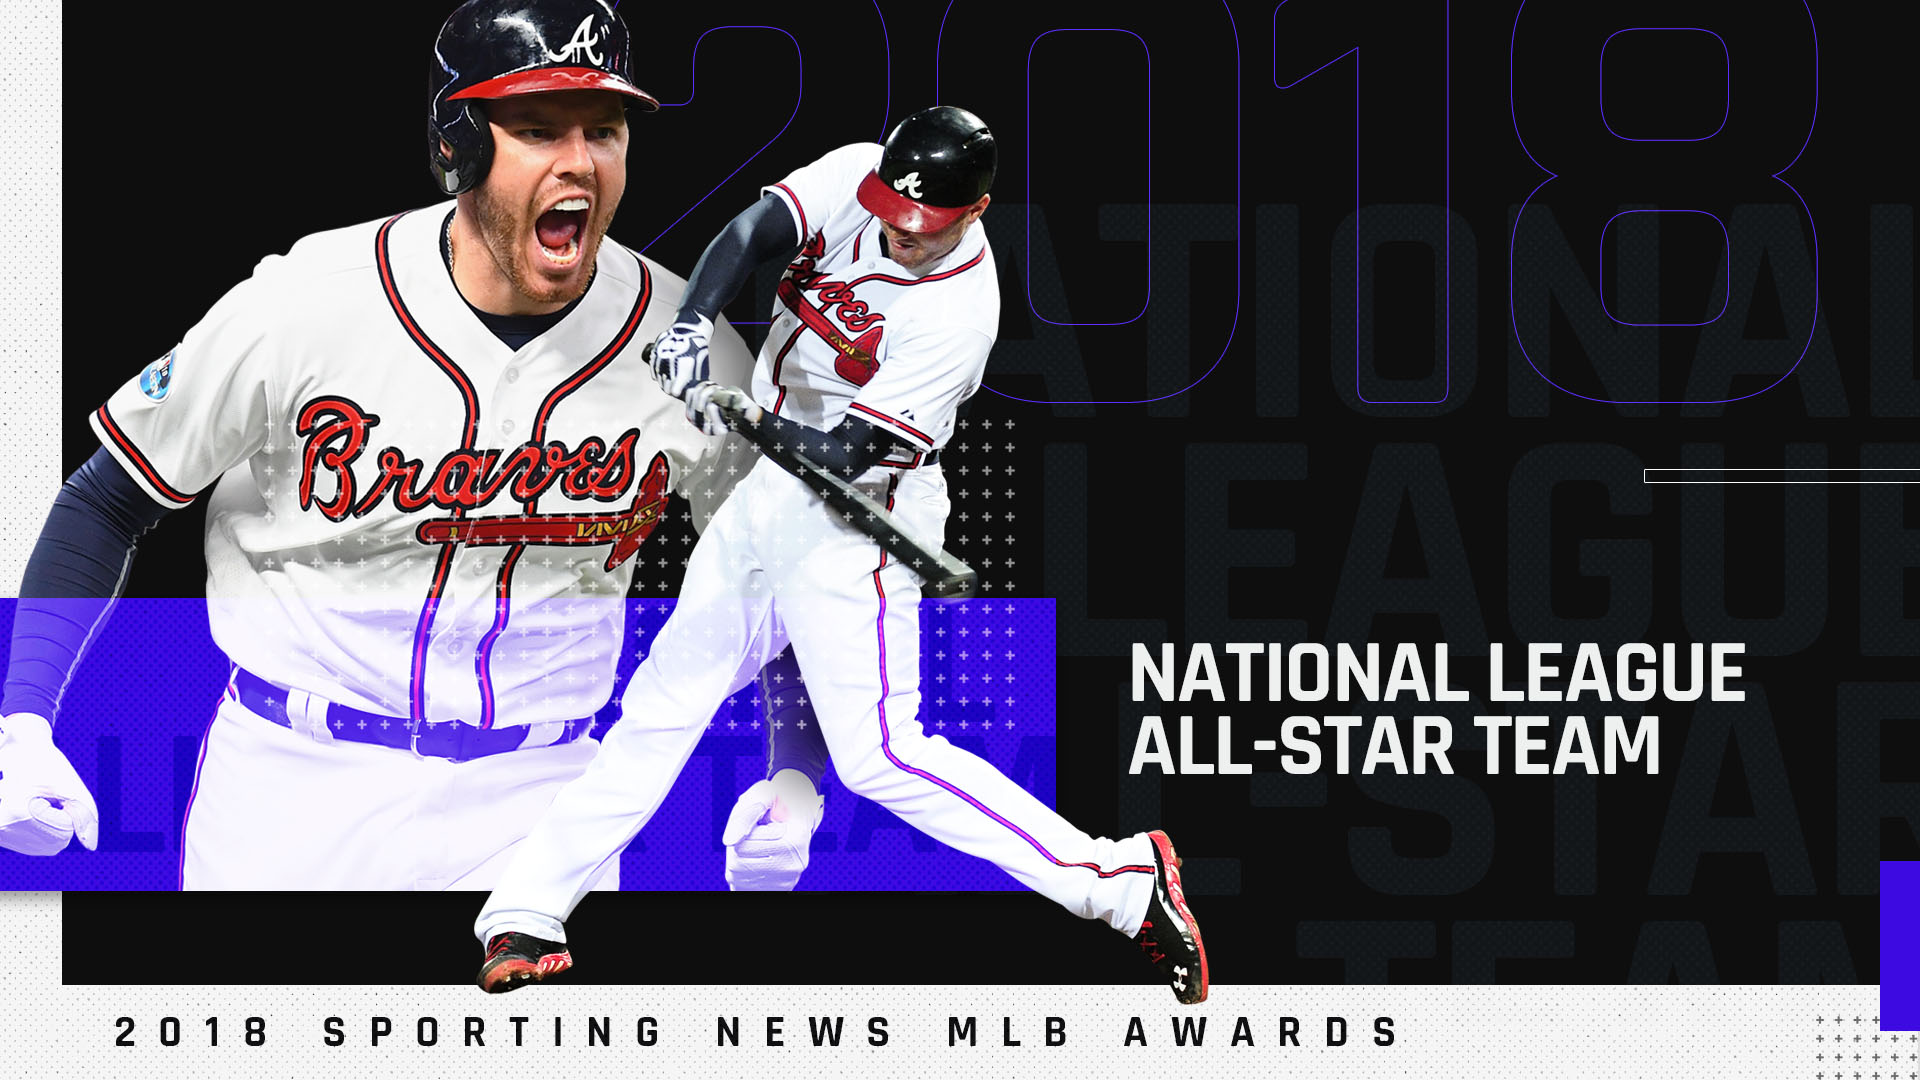 Mlbawards-2018-wednesday-nl-all-star_1ivo2f5liiwvw1b9v730n8wkhx